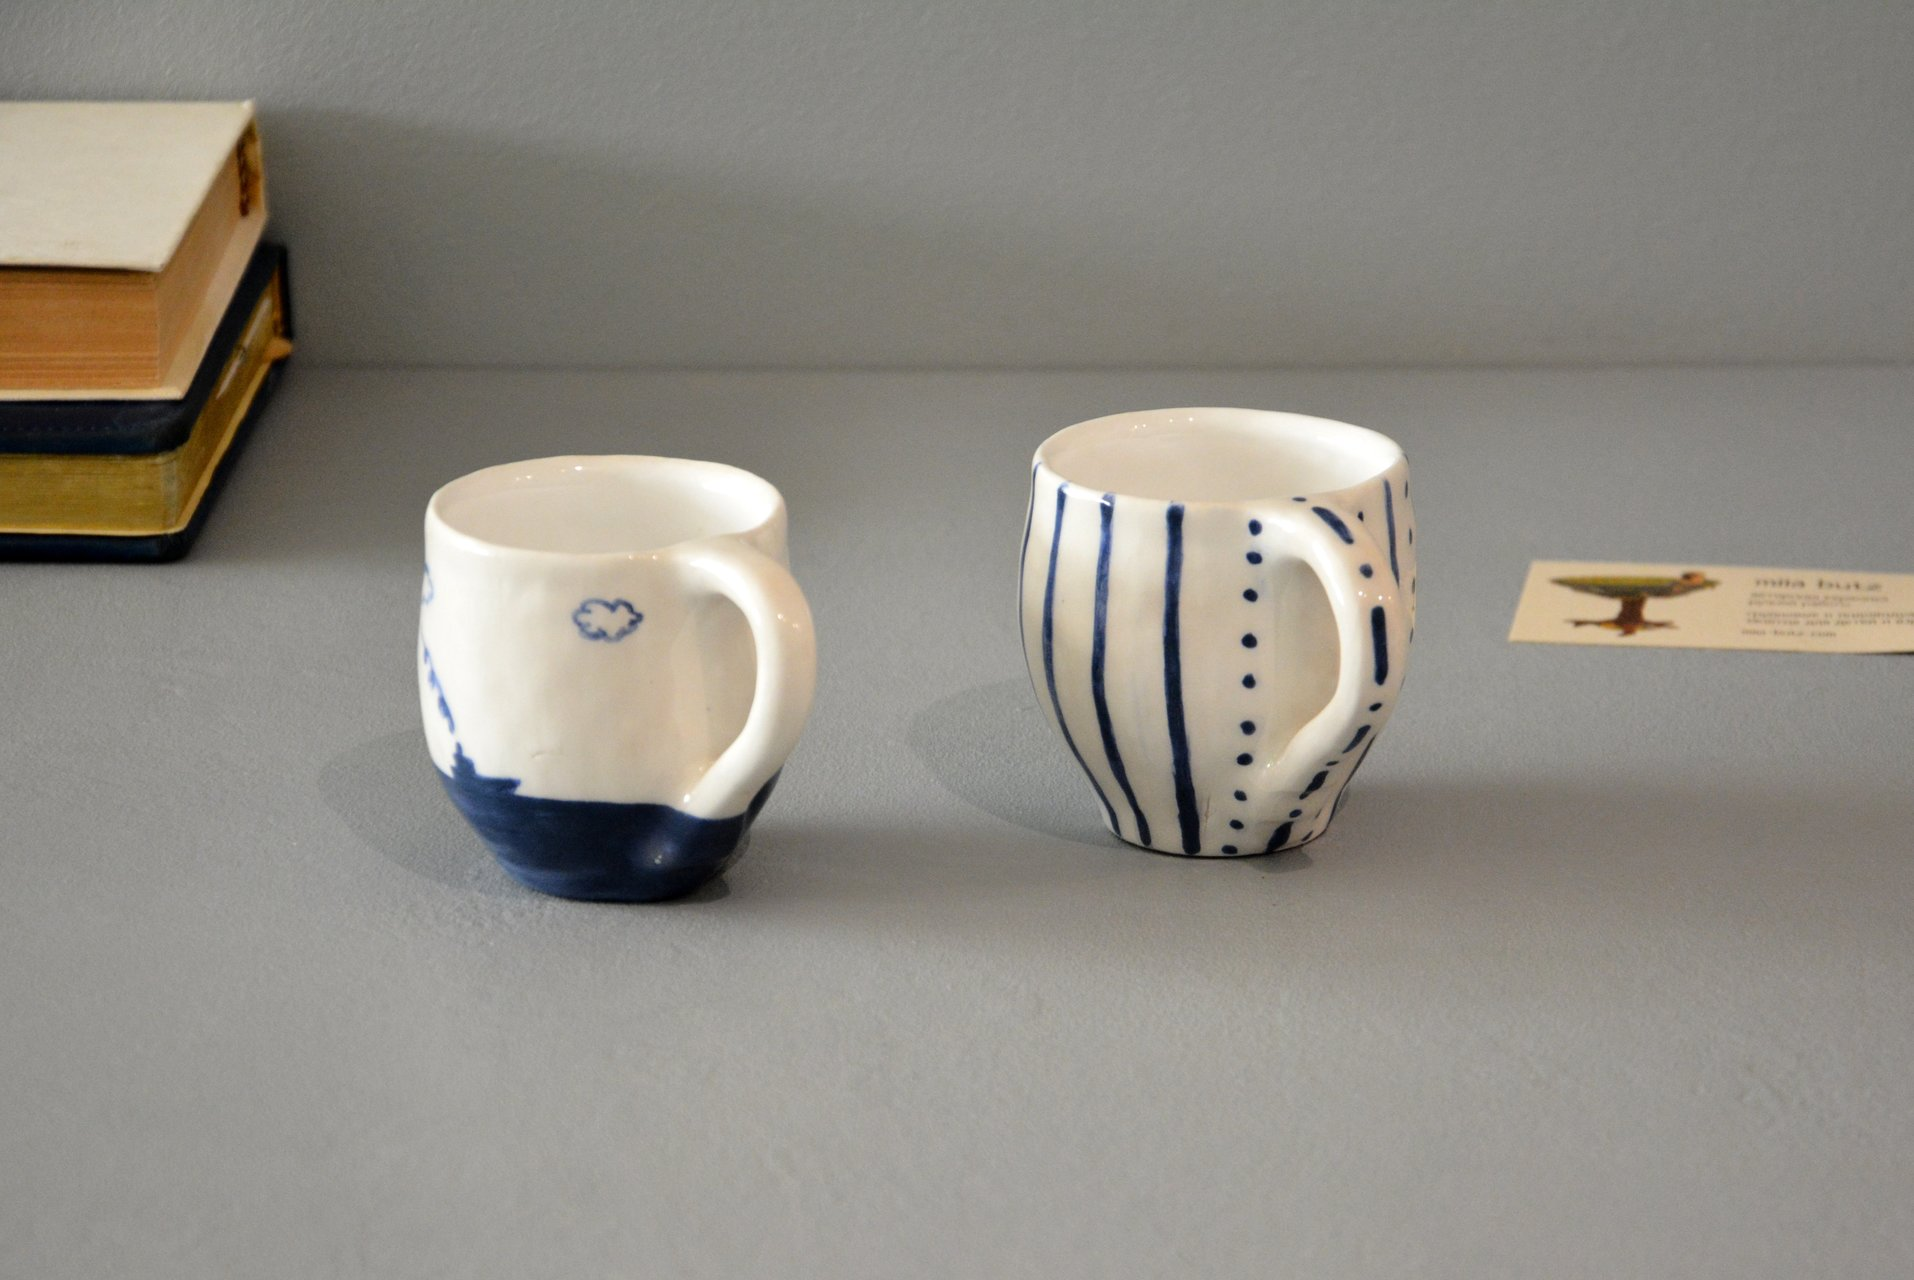 Pair of white cups for espresso, 100 ml and 150 ml, photo 2 of 5.